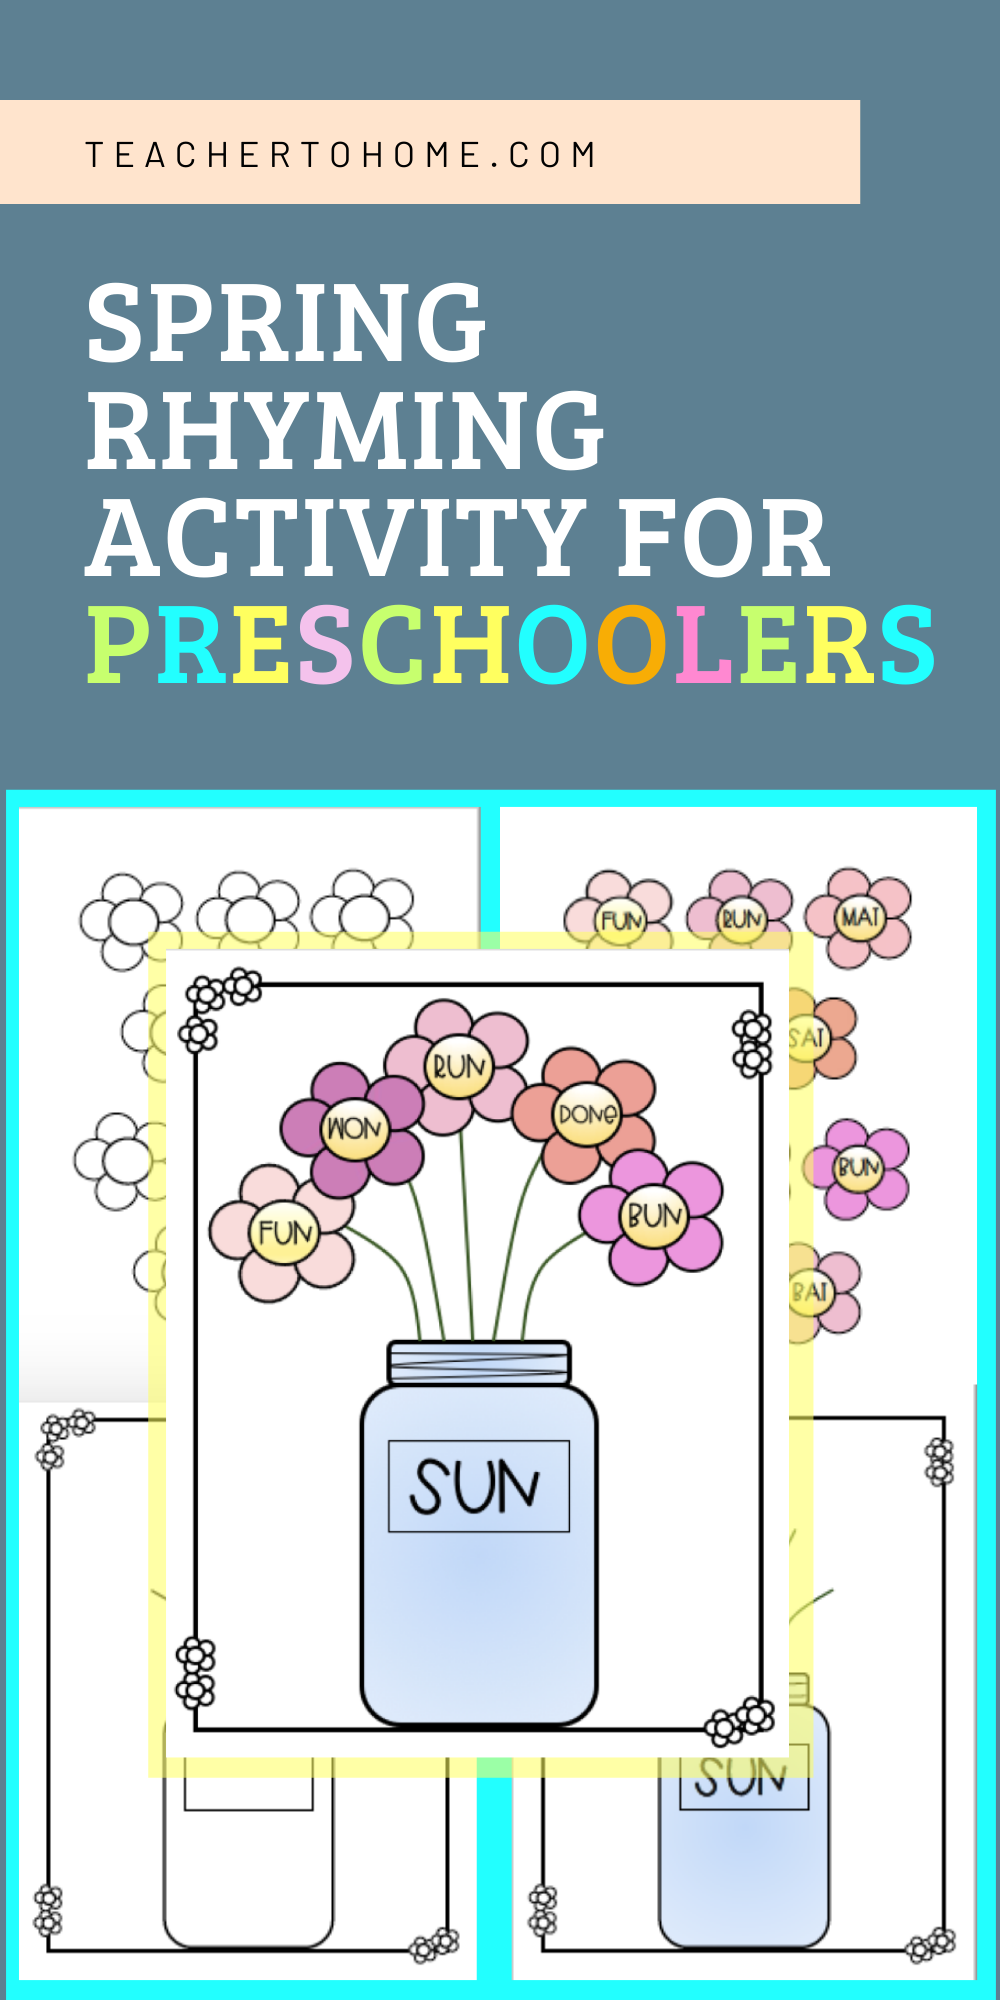 Rhyming Activities for Preschoolers at Home in 2020 ...